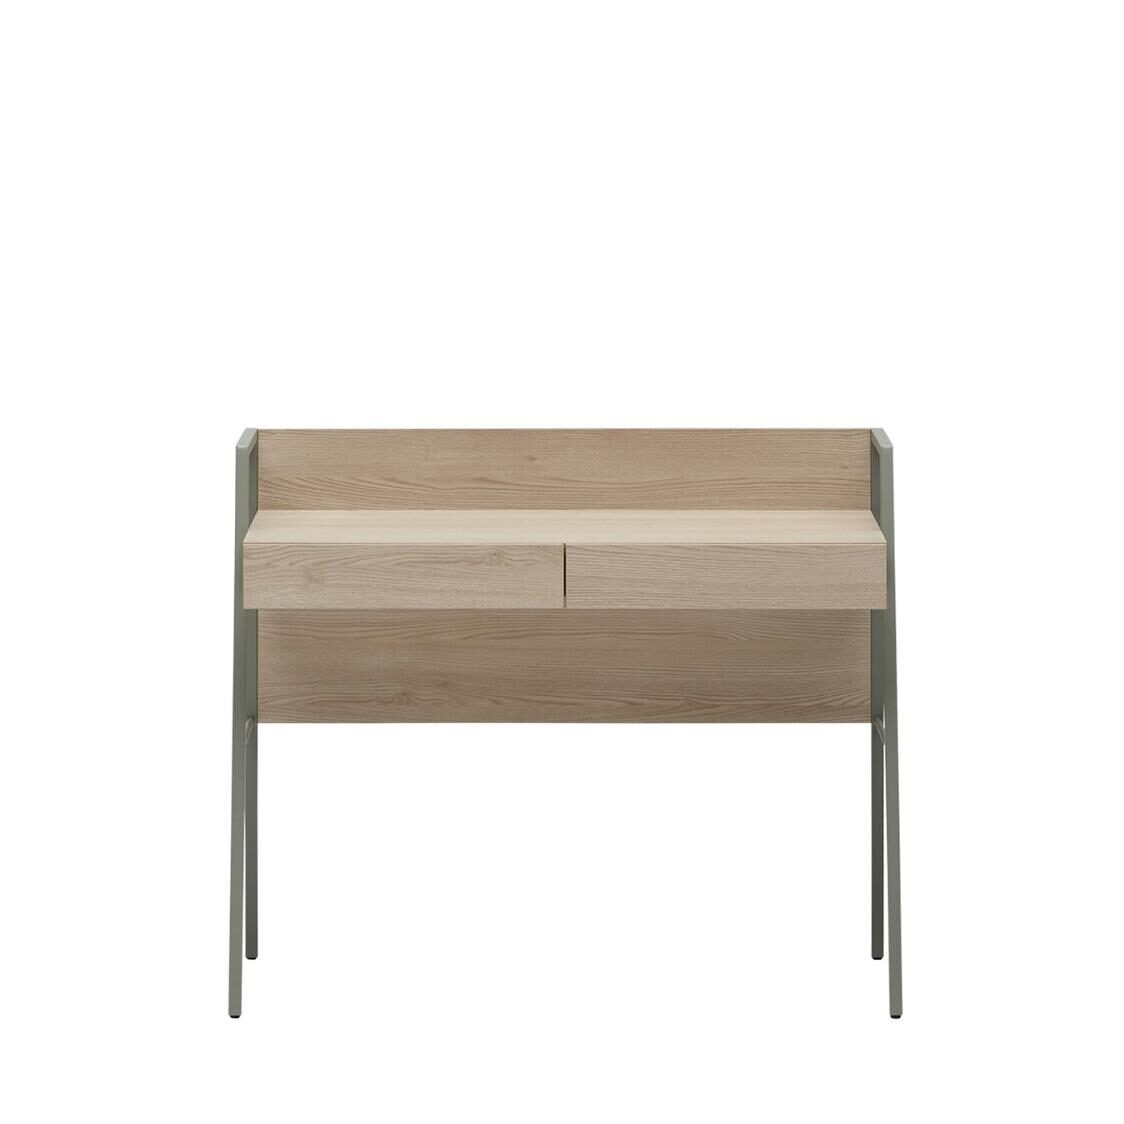 Iloom GLEN STUDIO Multi Table HSPD010-NCCGG